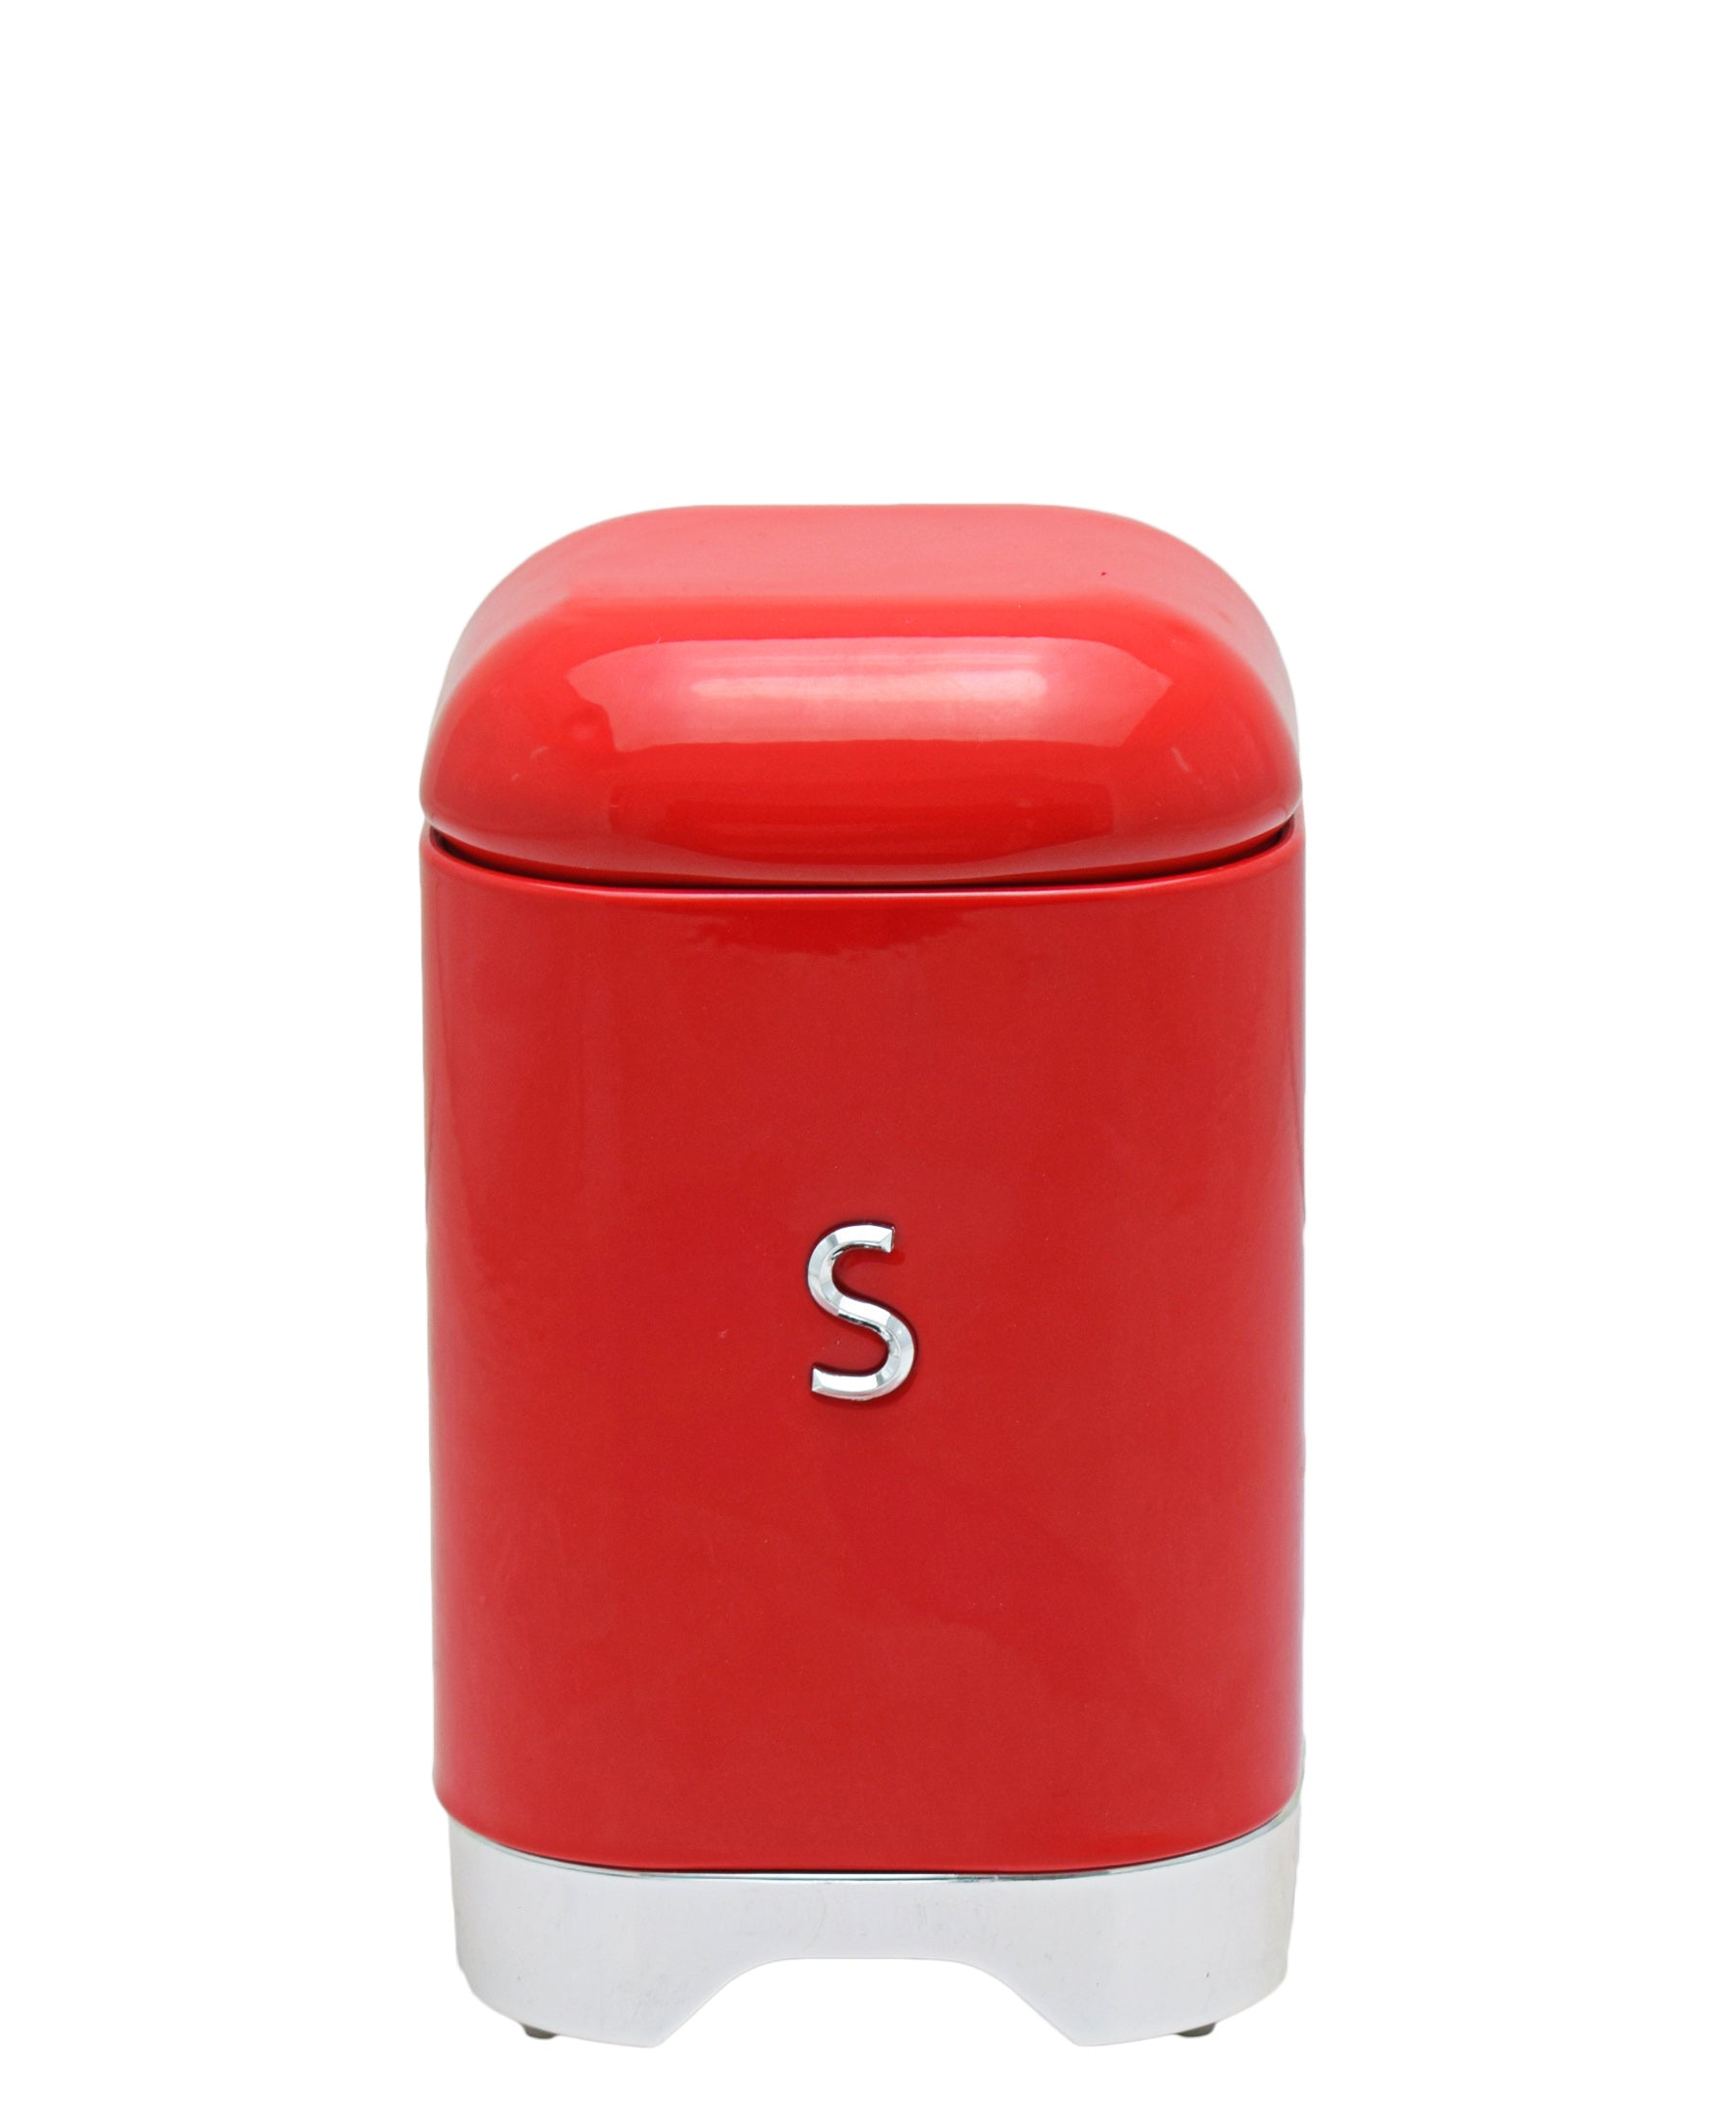 Retro Sugar Tin - Red